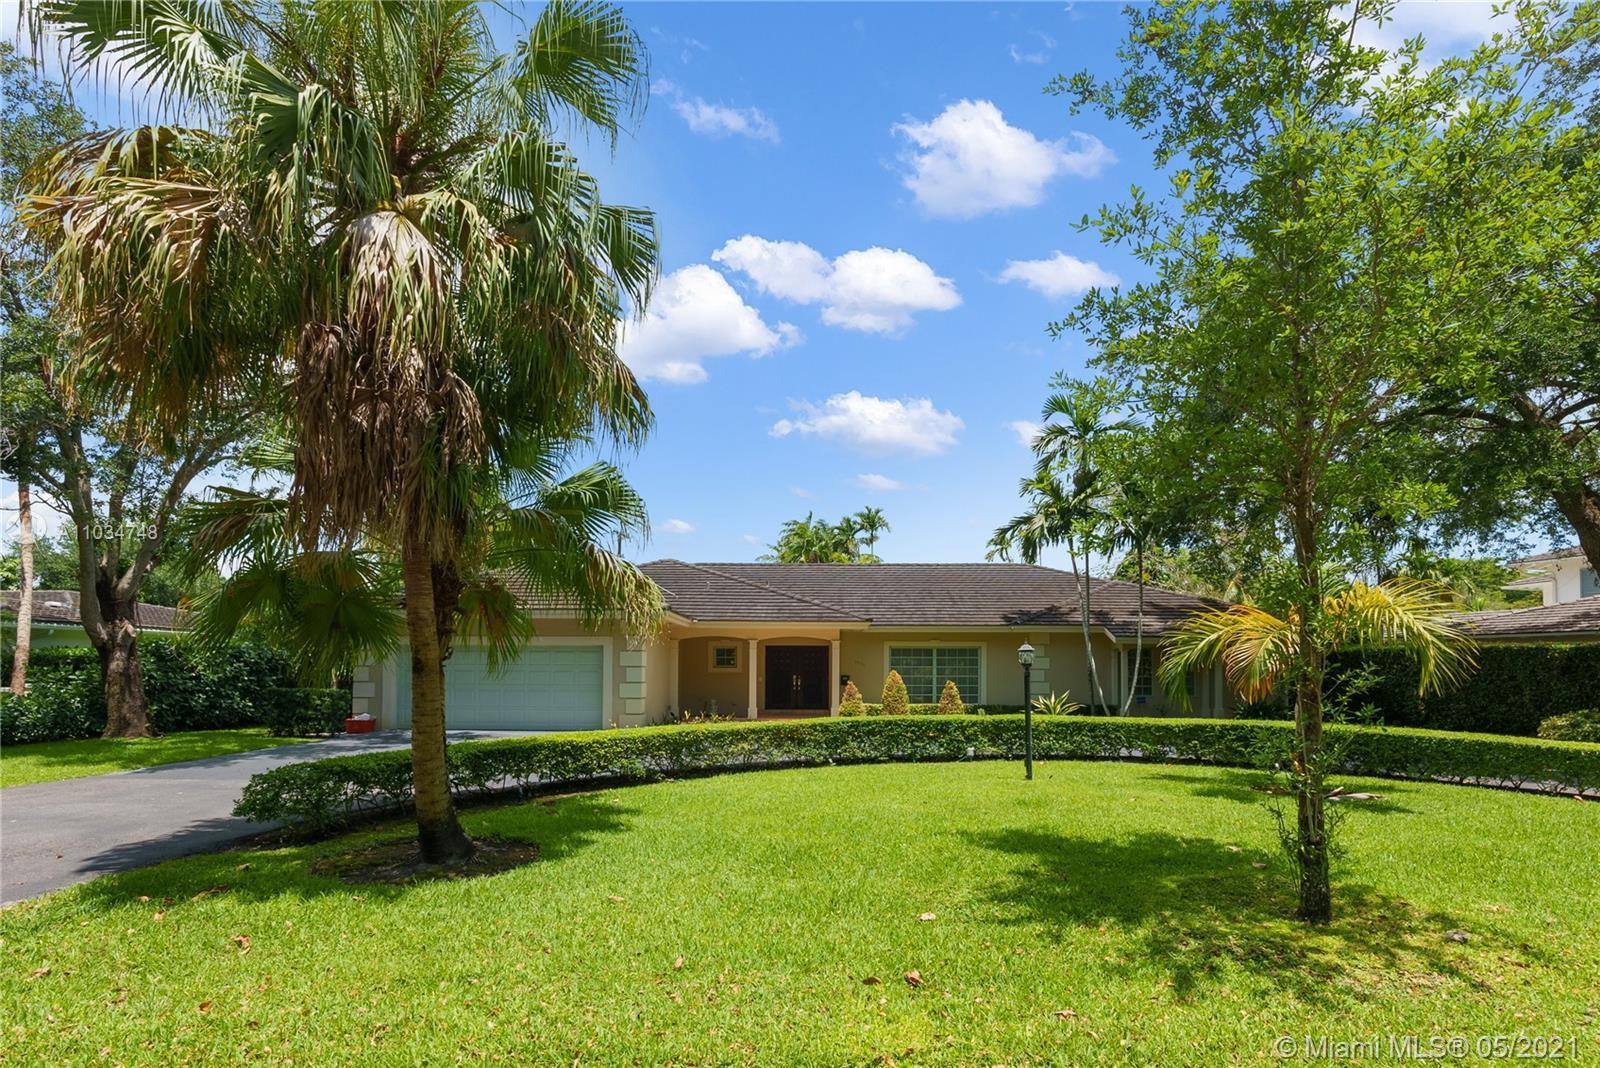 Perfect for a large family, spacious one-story home with split plan and pool on a quiet charming str